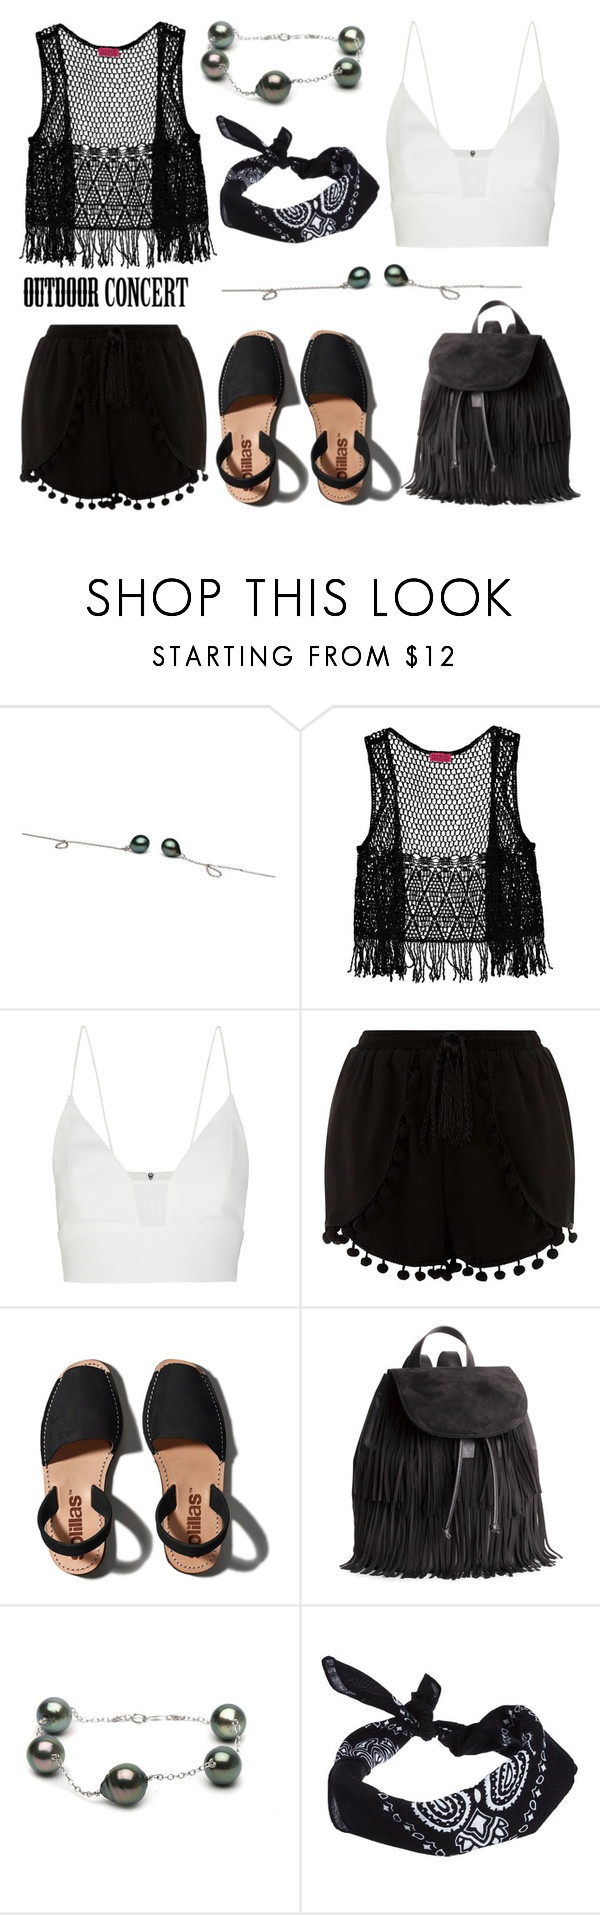 """Outdoor Summer Concert"" by pearlparadise ❤ liked on Polyvore featuring Boohoo, Narciso Rodriguez, Cameo Rose, Abercrombie & Fitch, H&M, ASOS, summerstyle, contestentry, outdoorconcert and pearljewelry"